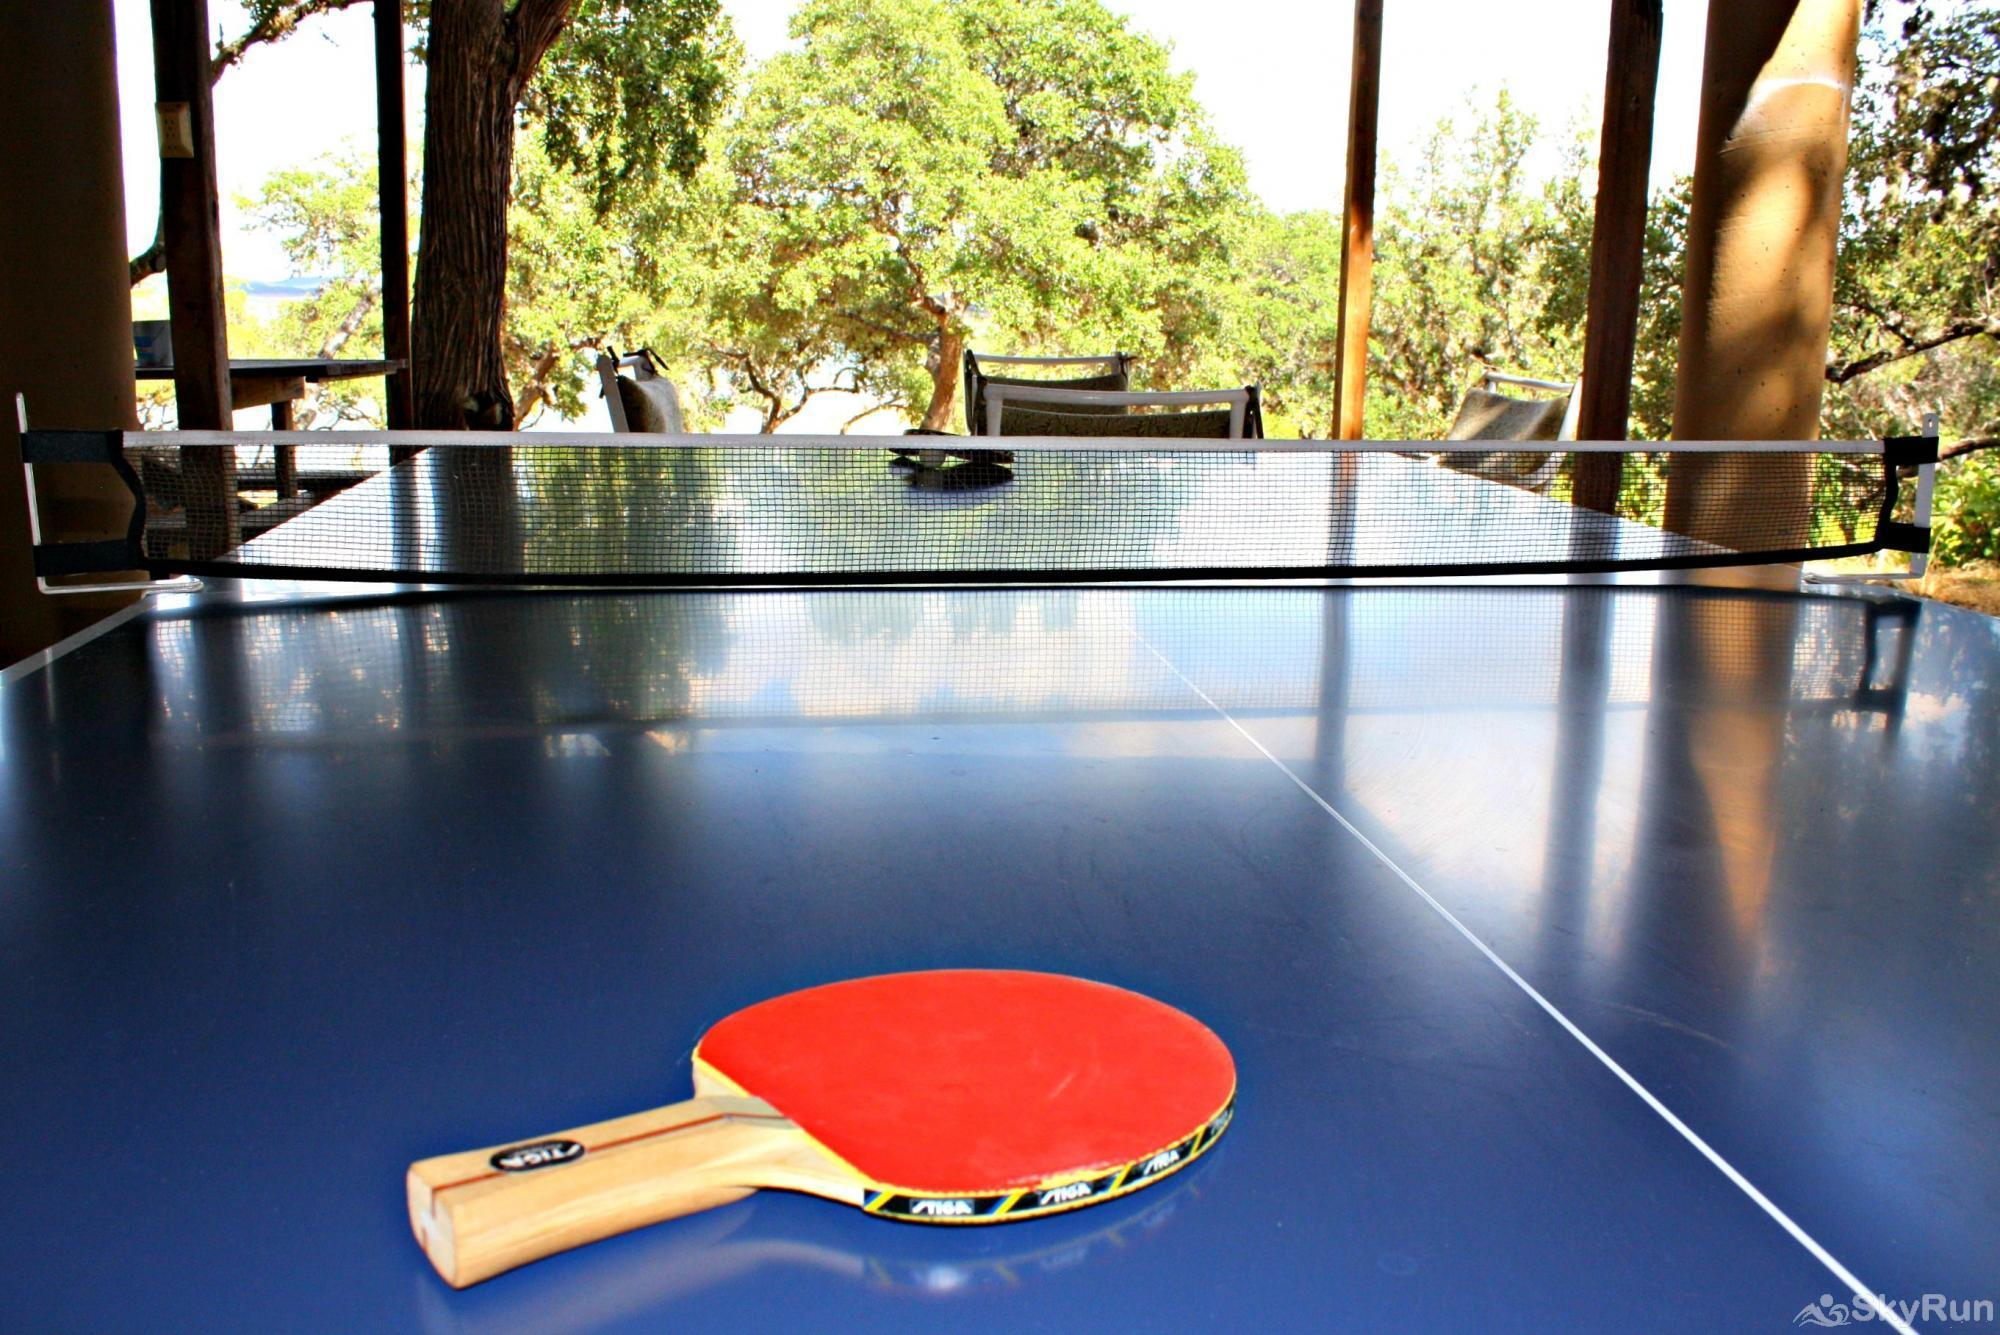 CASA DEL LAGO Ping Pong Table for Age- Old Rivalry Matches